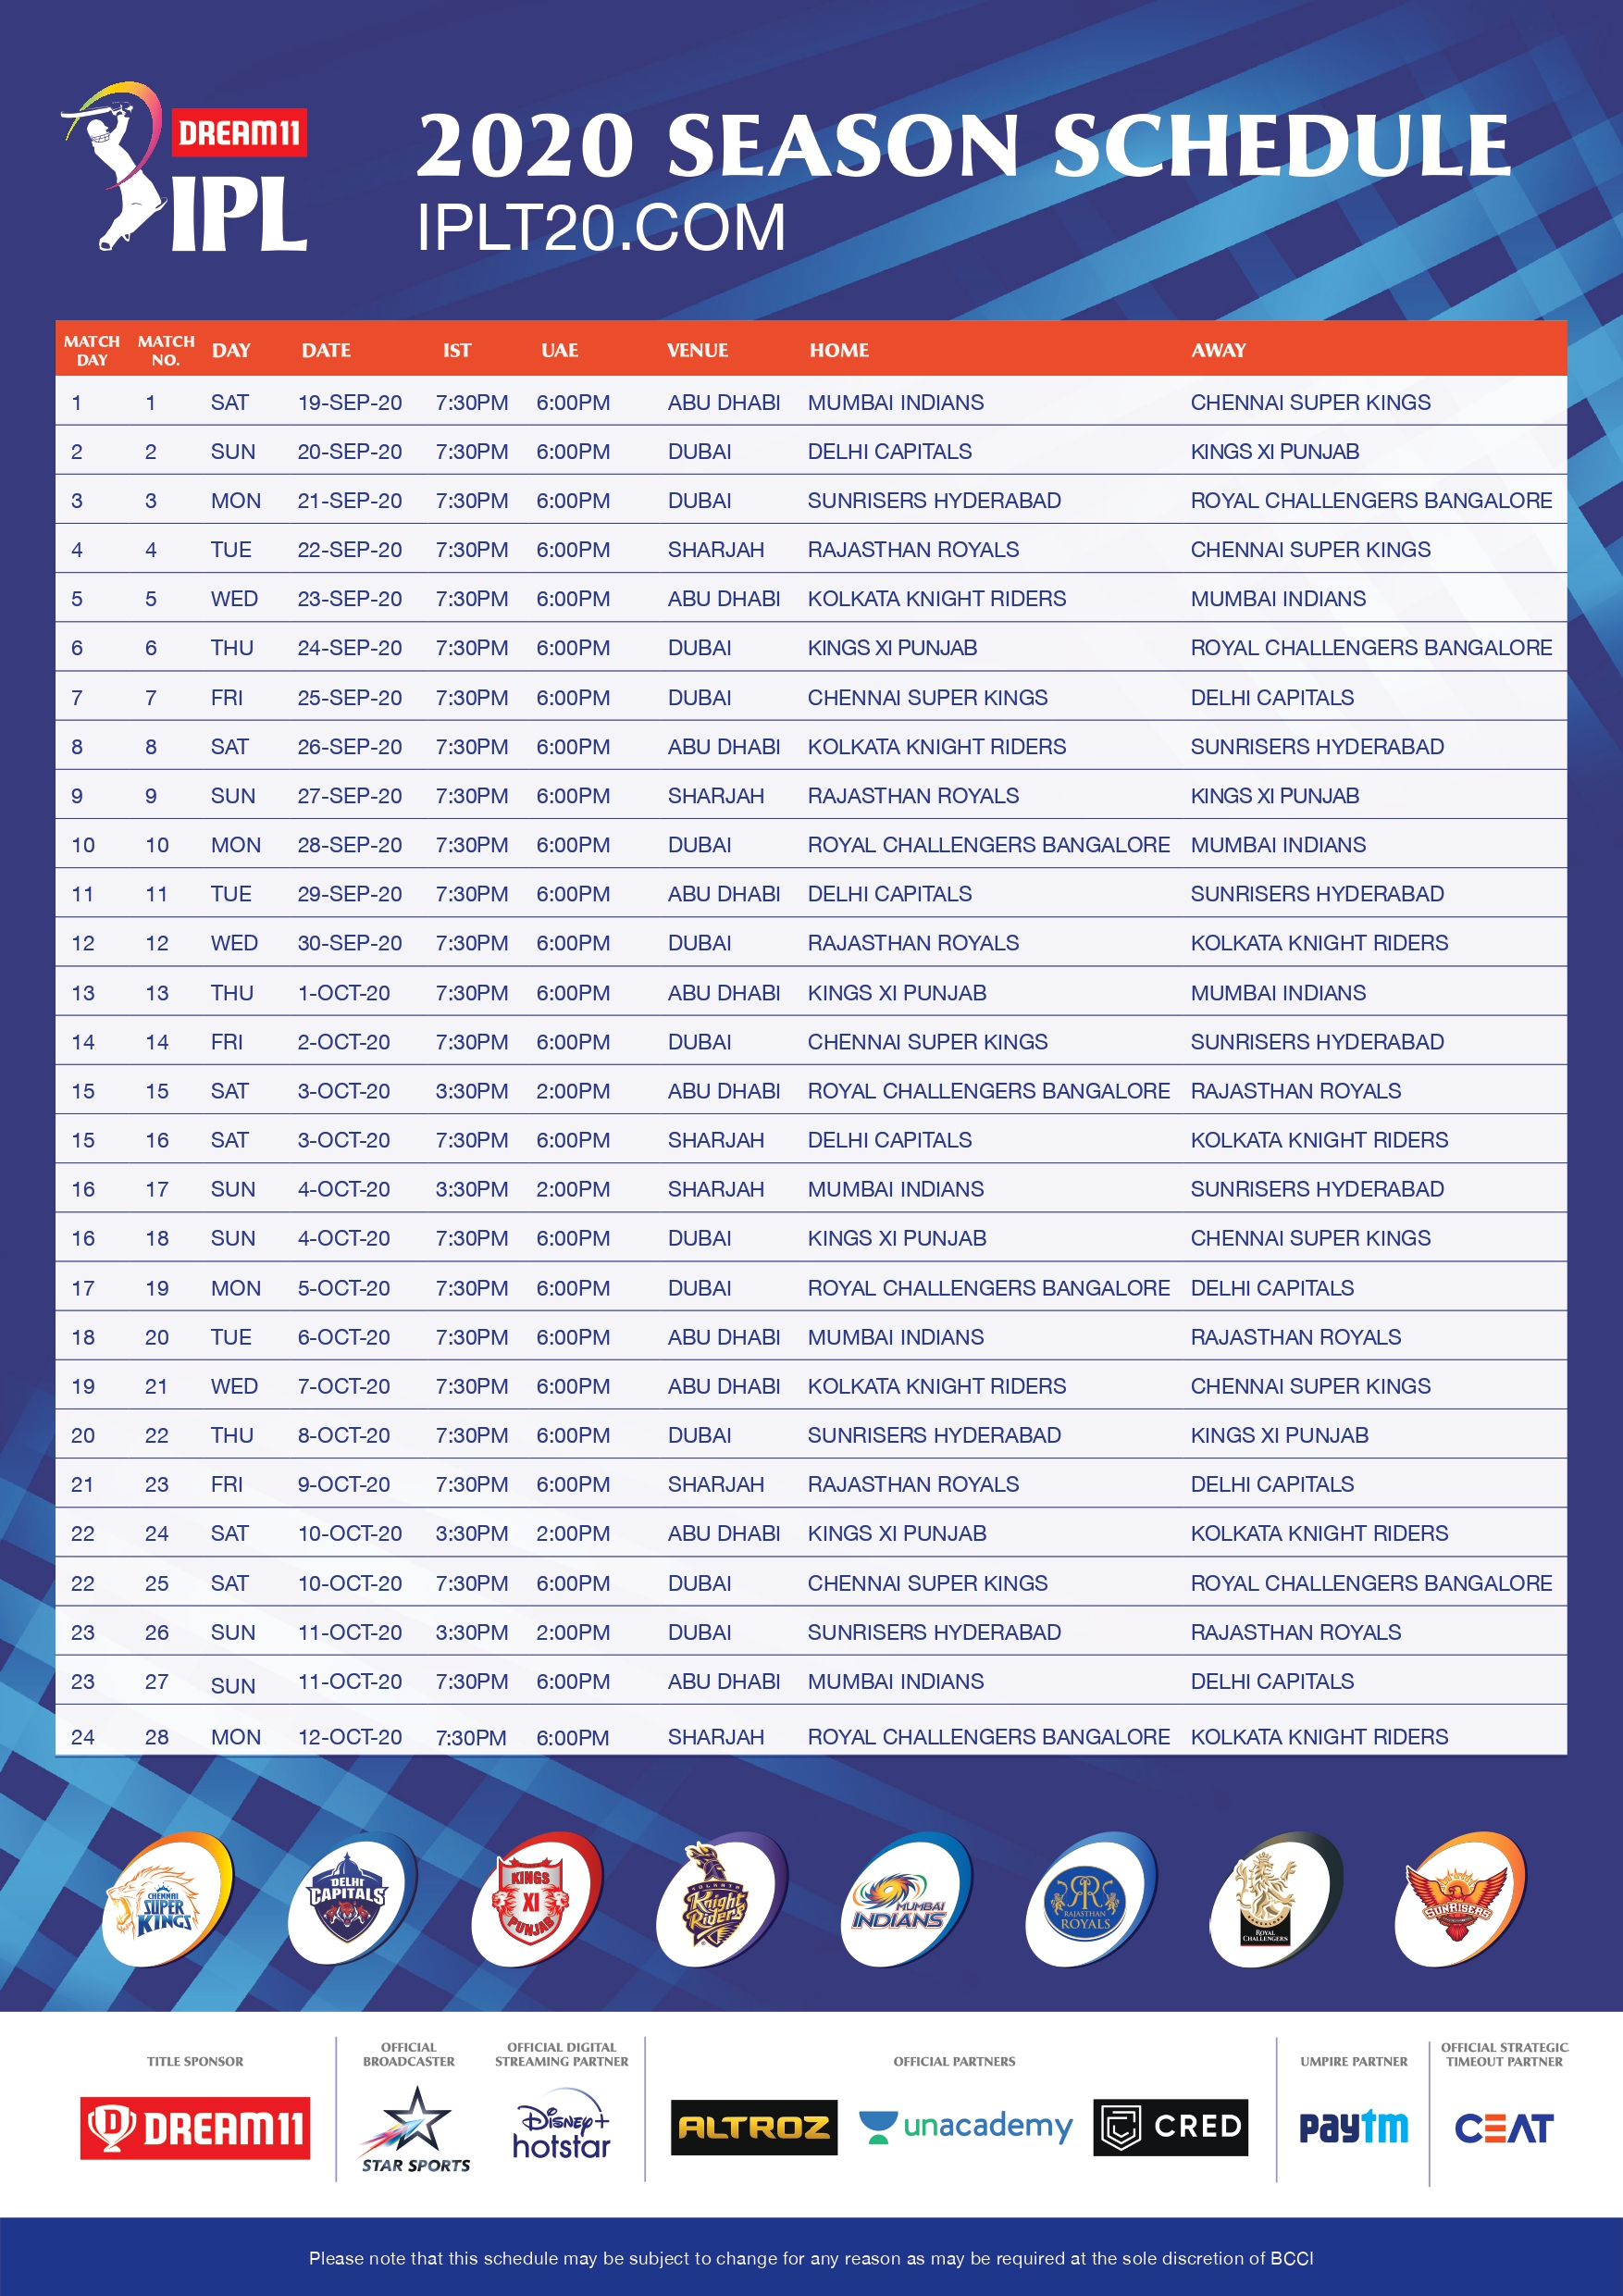 Dream11 IPL 2020 Schedule PDF